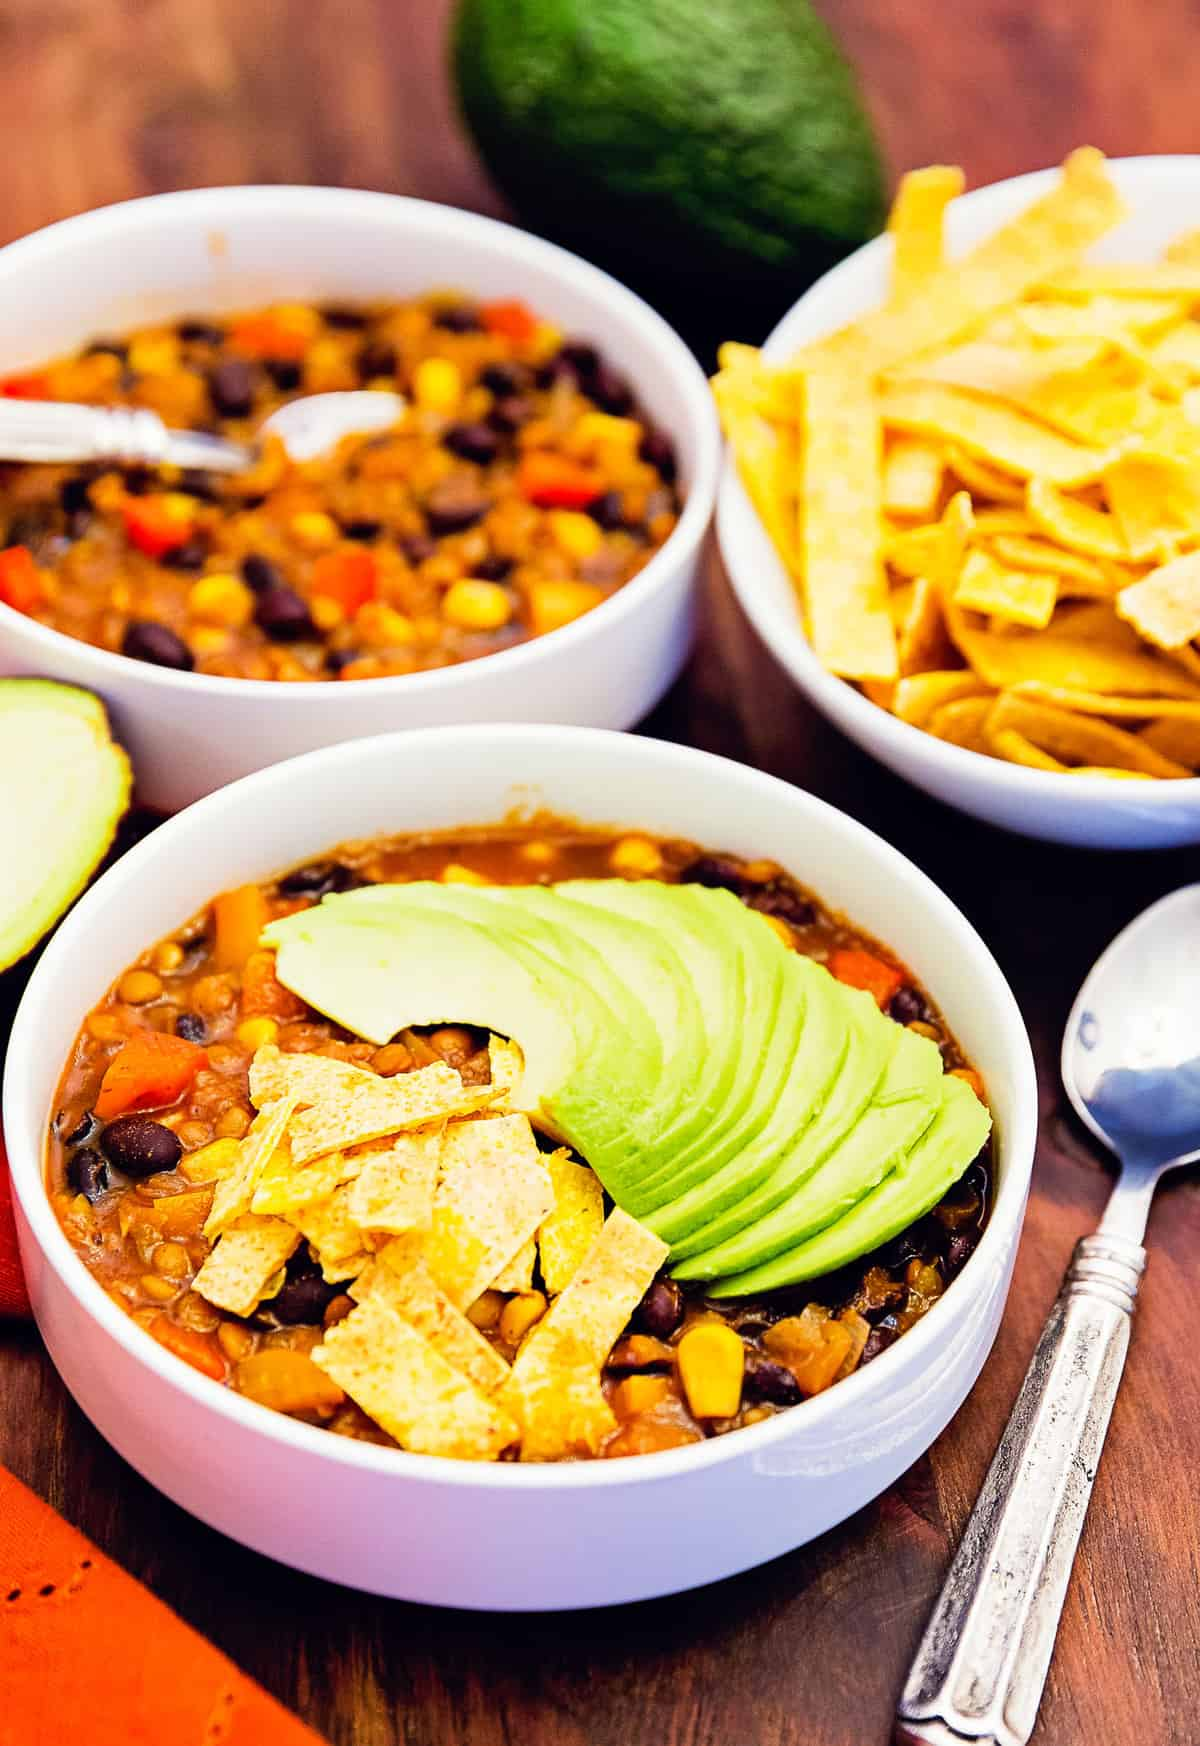 tortilla stew, tortilla soup, whole food plant based, plant based, soup, stew, Mexican, tortilla, vegan, vegetarian, no oil, oil free, refined sugar free, healthy